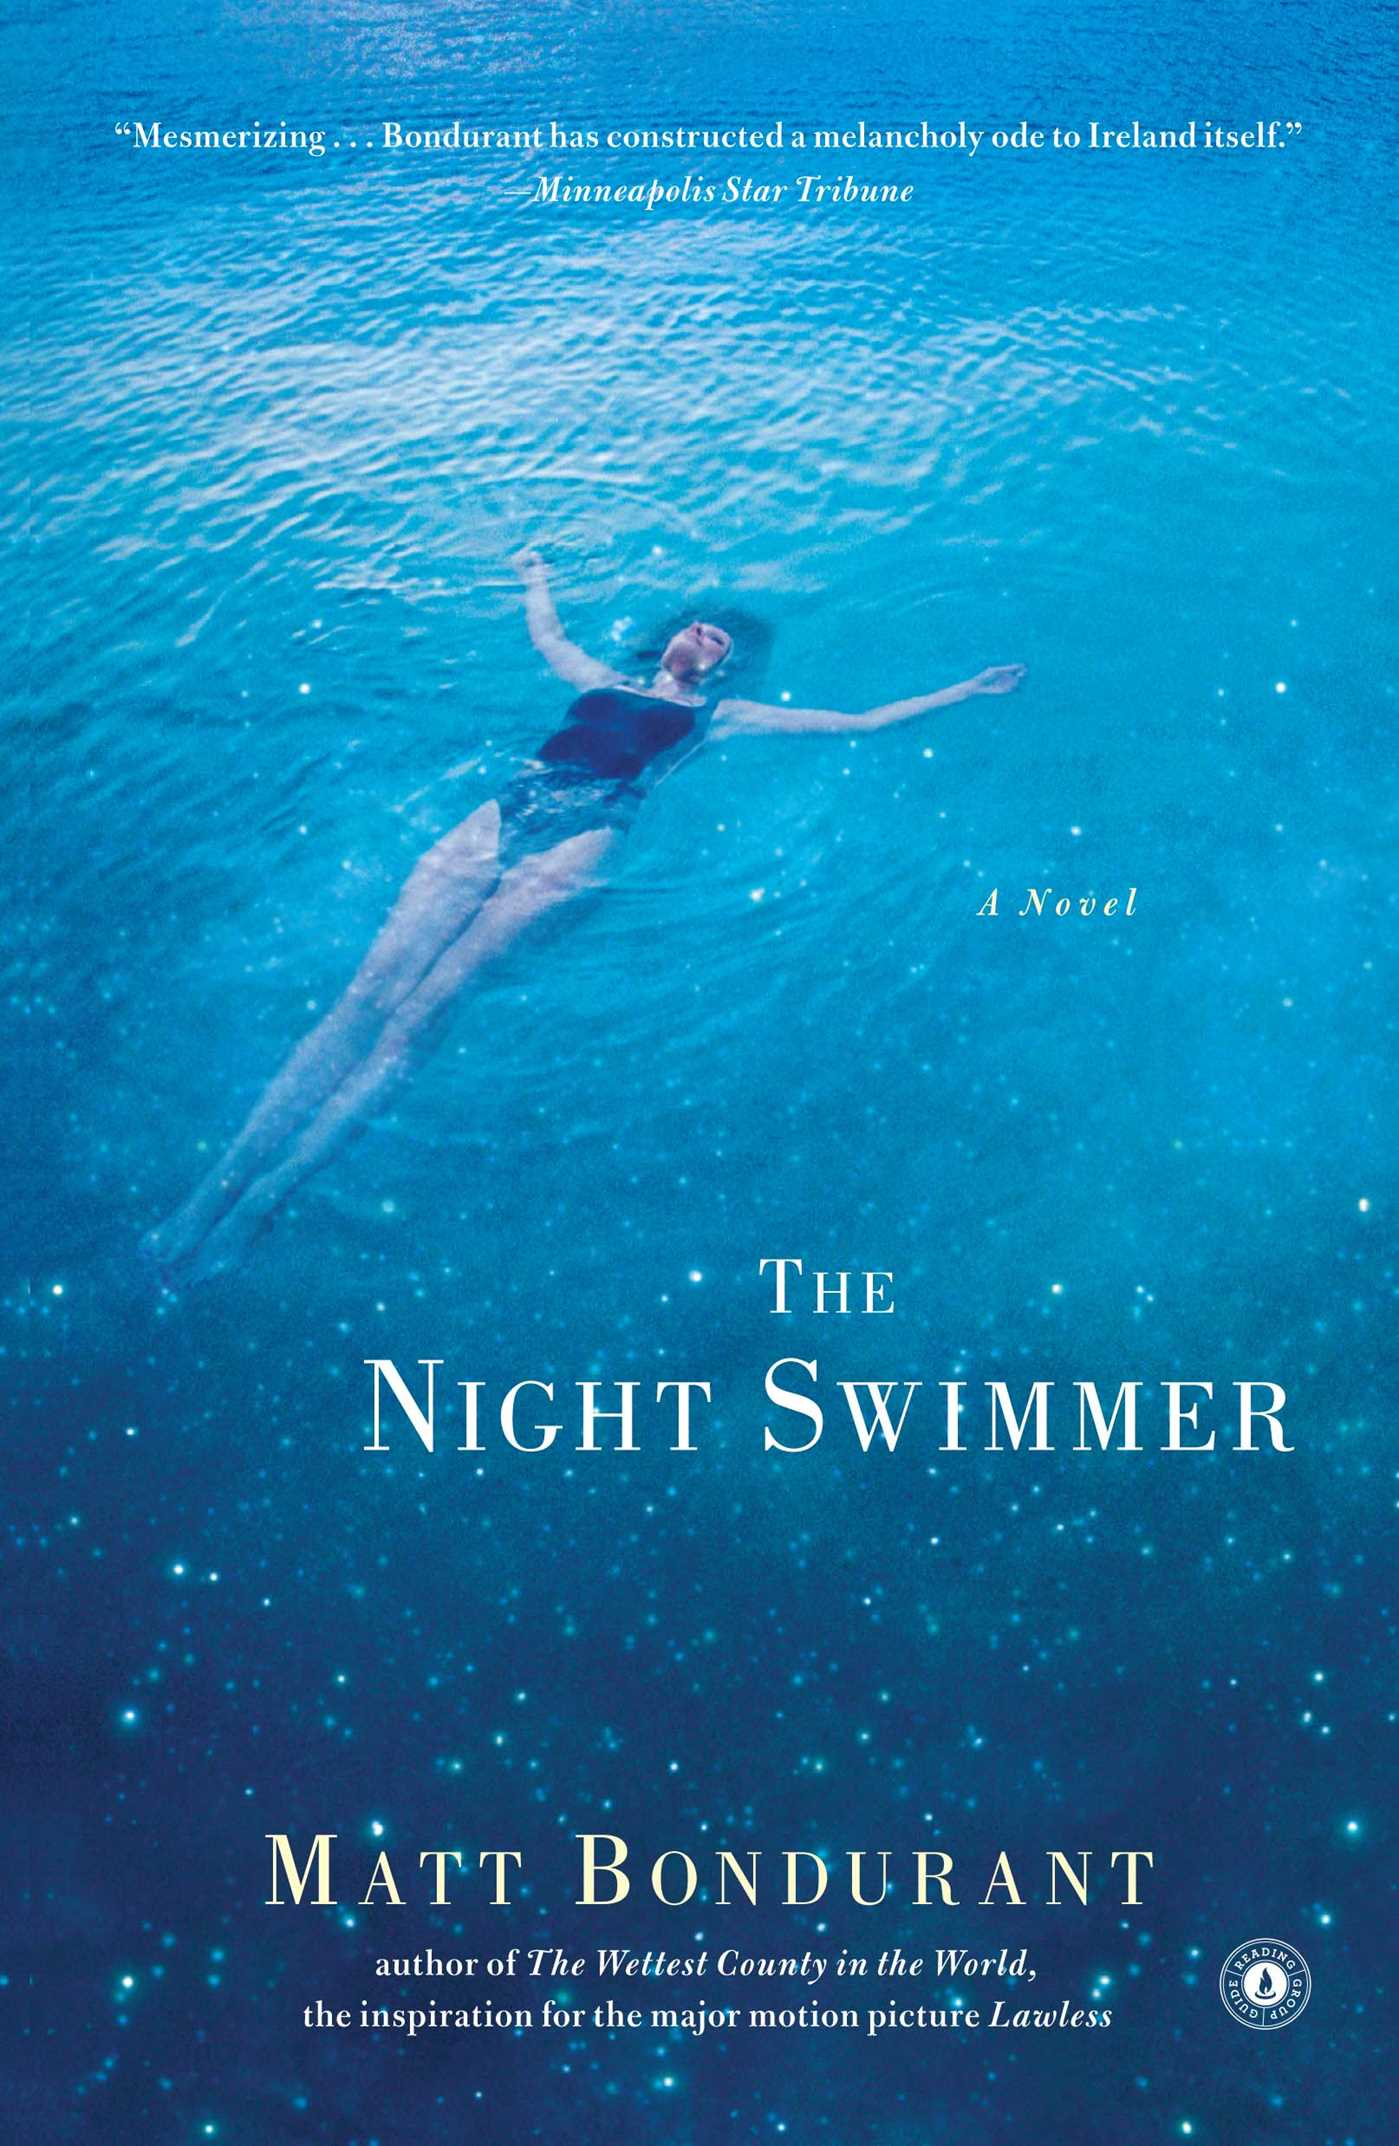 The night swimmer 9781451625318 hr